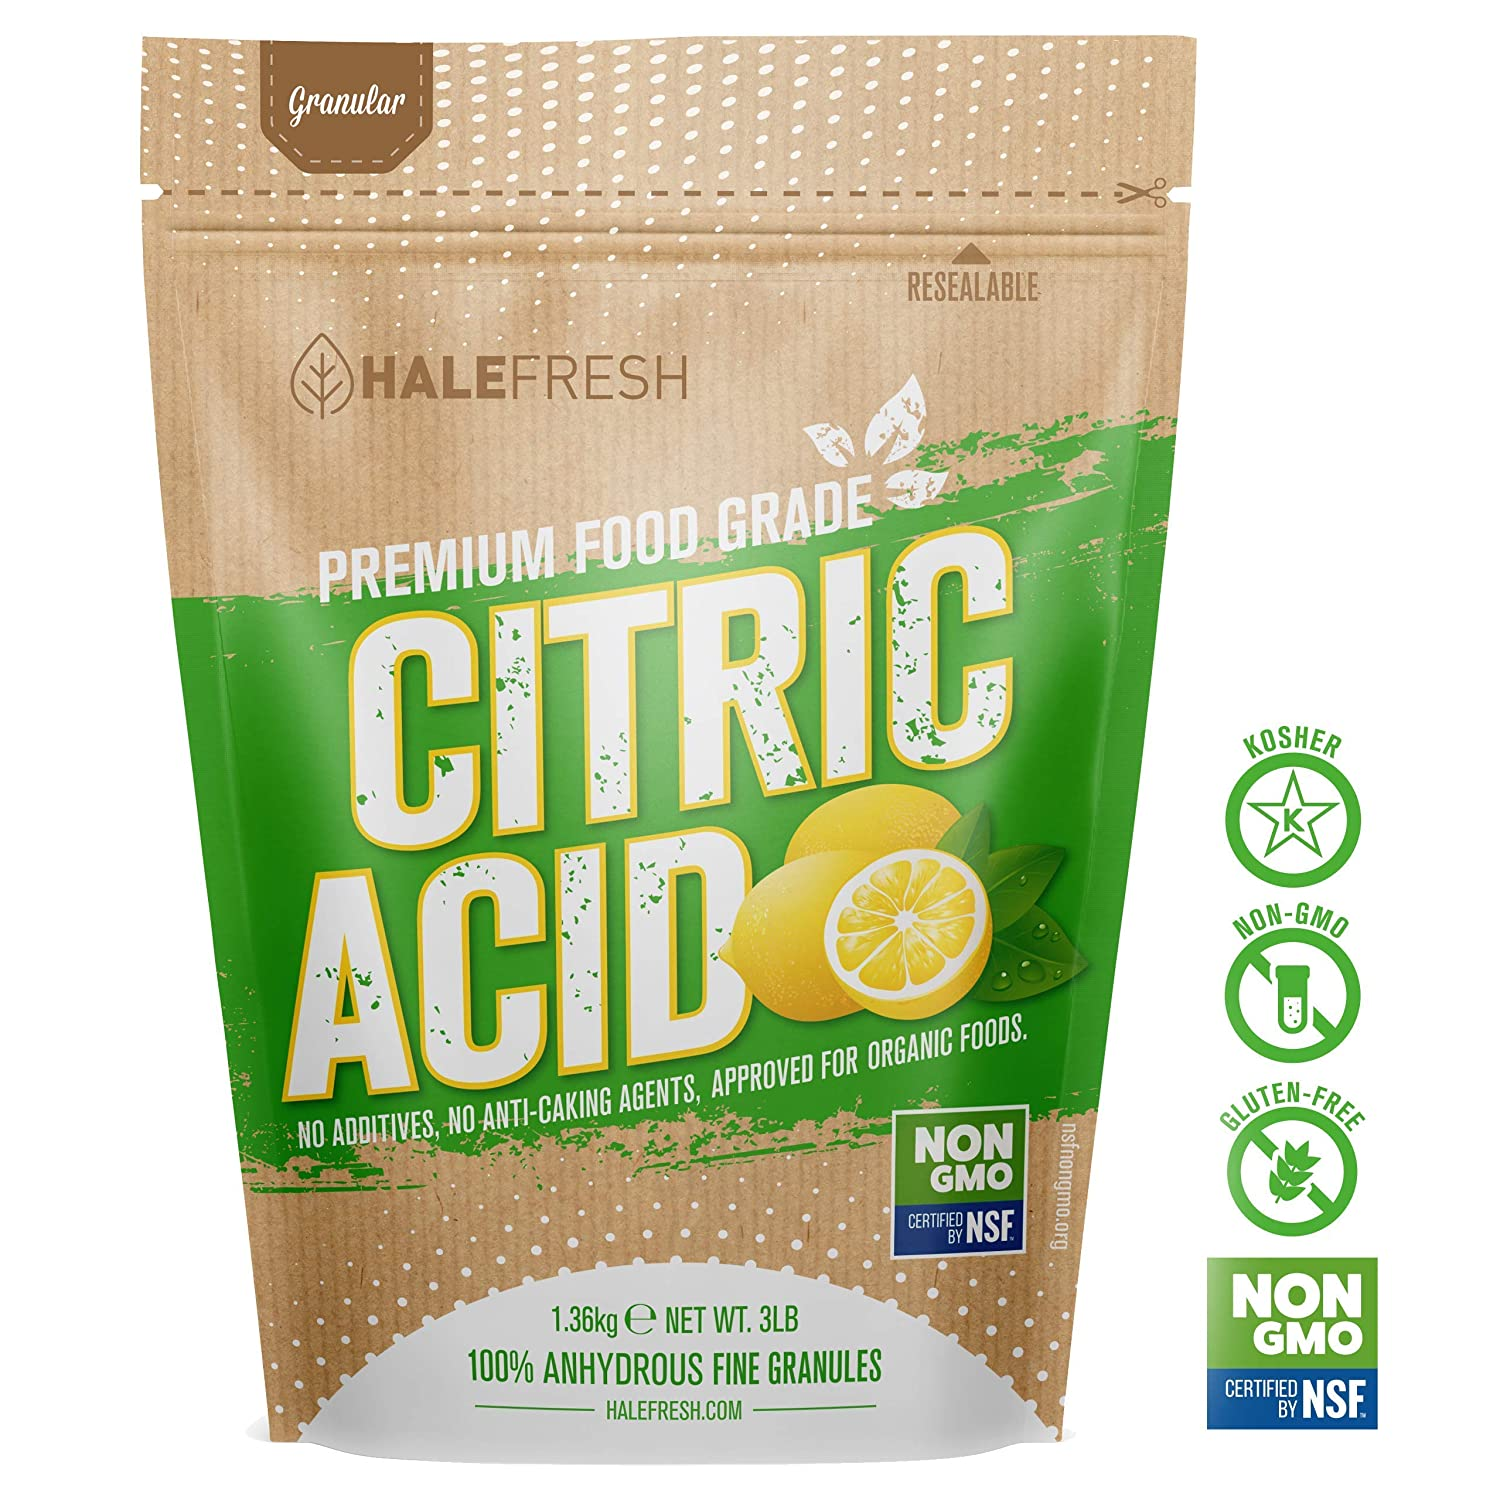 Citric Acid - 3 lb Pure for Bath Bombs - Kosher and Gluten Free - Approved for Organic Foods USP Grade USA Made